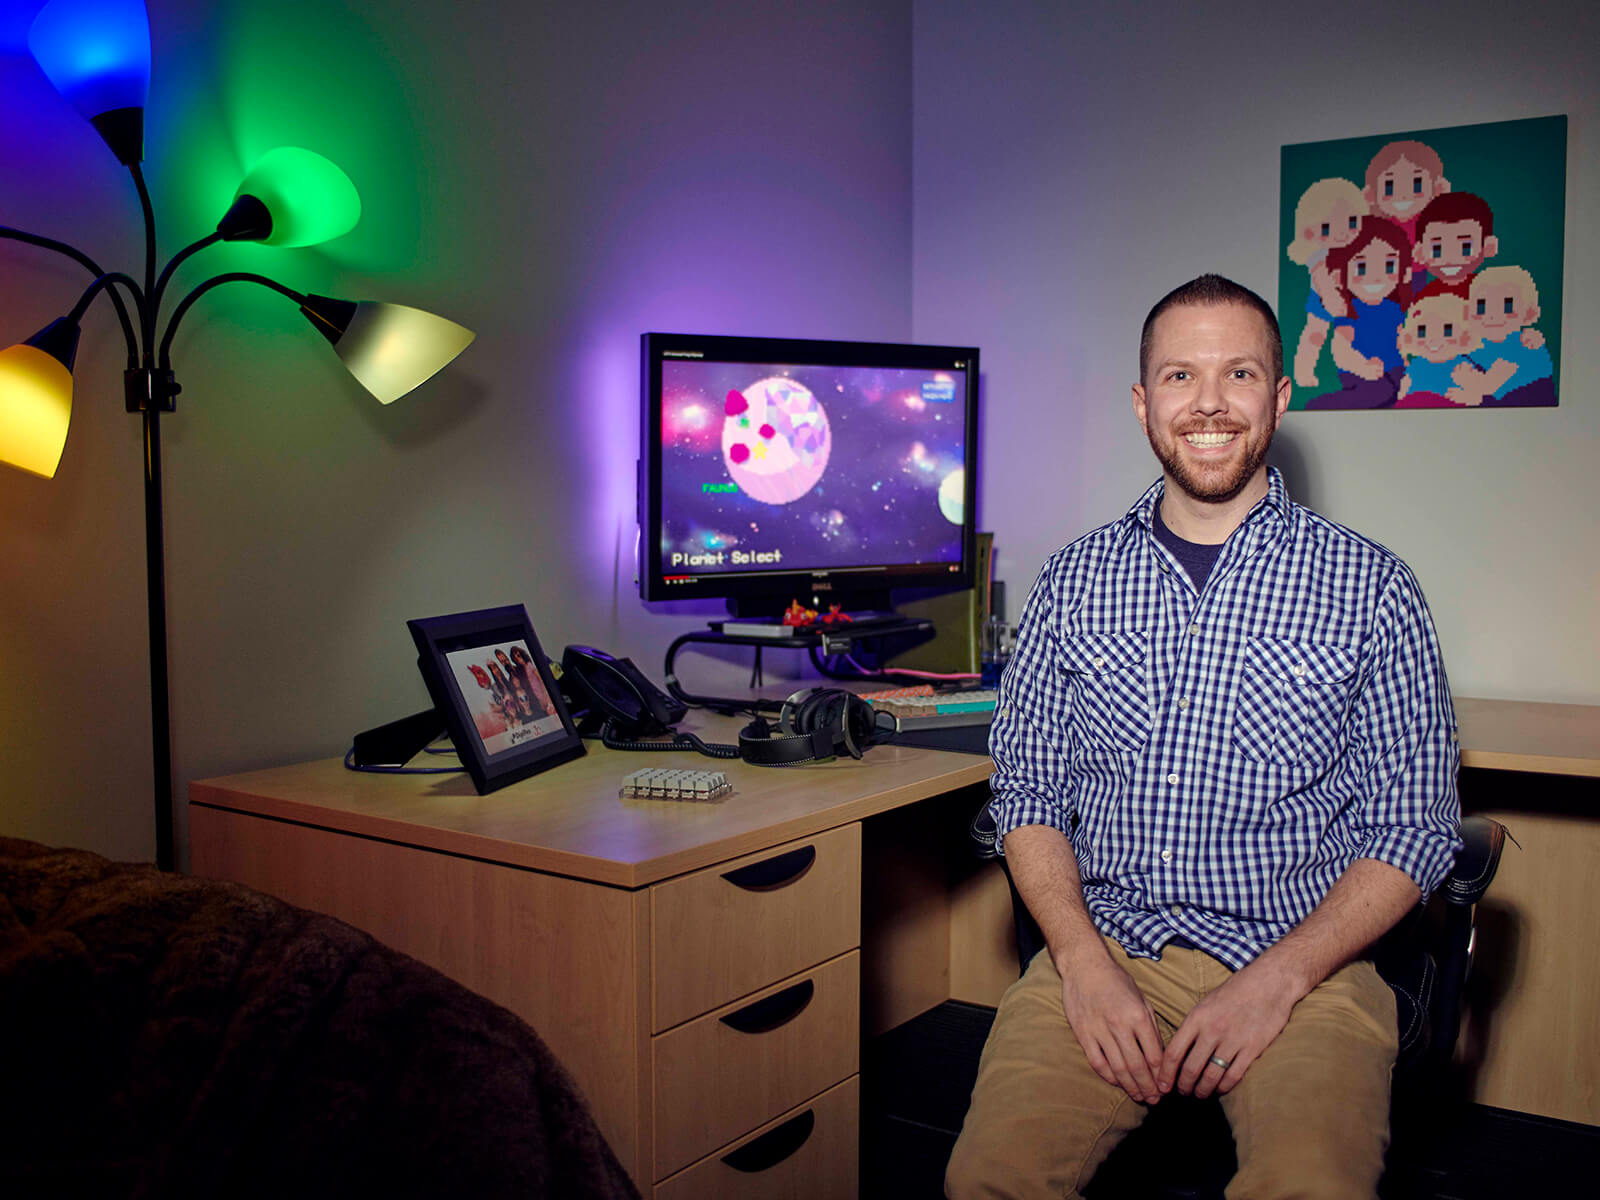 Justin Chambers smiles facing camera at his office desk, dark room decorated with objects and illuminated by colorful lamps.